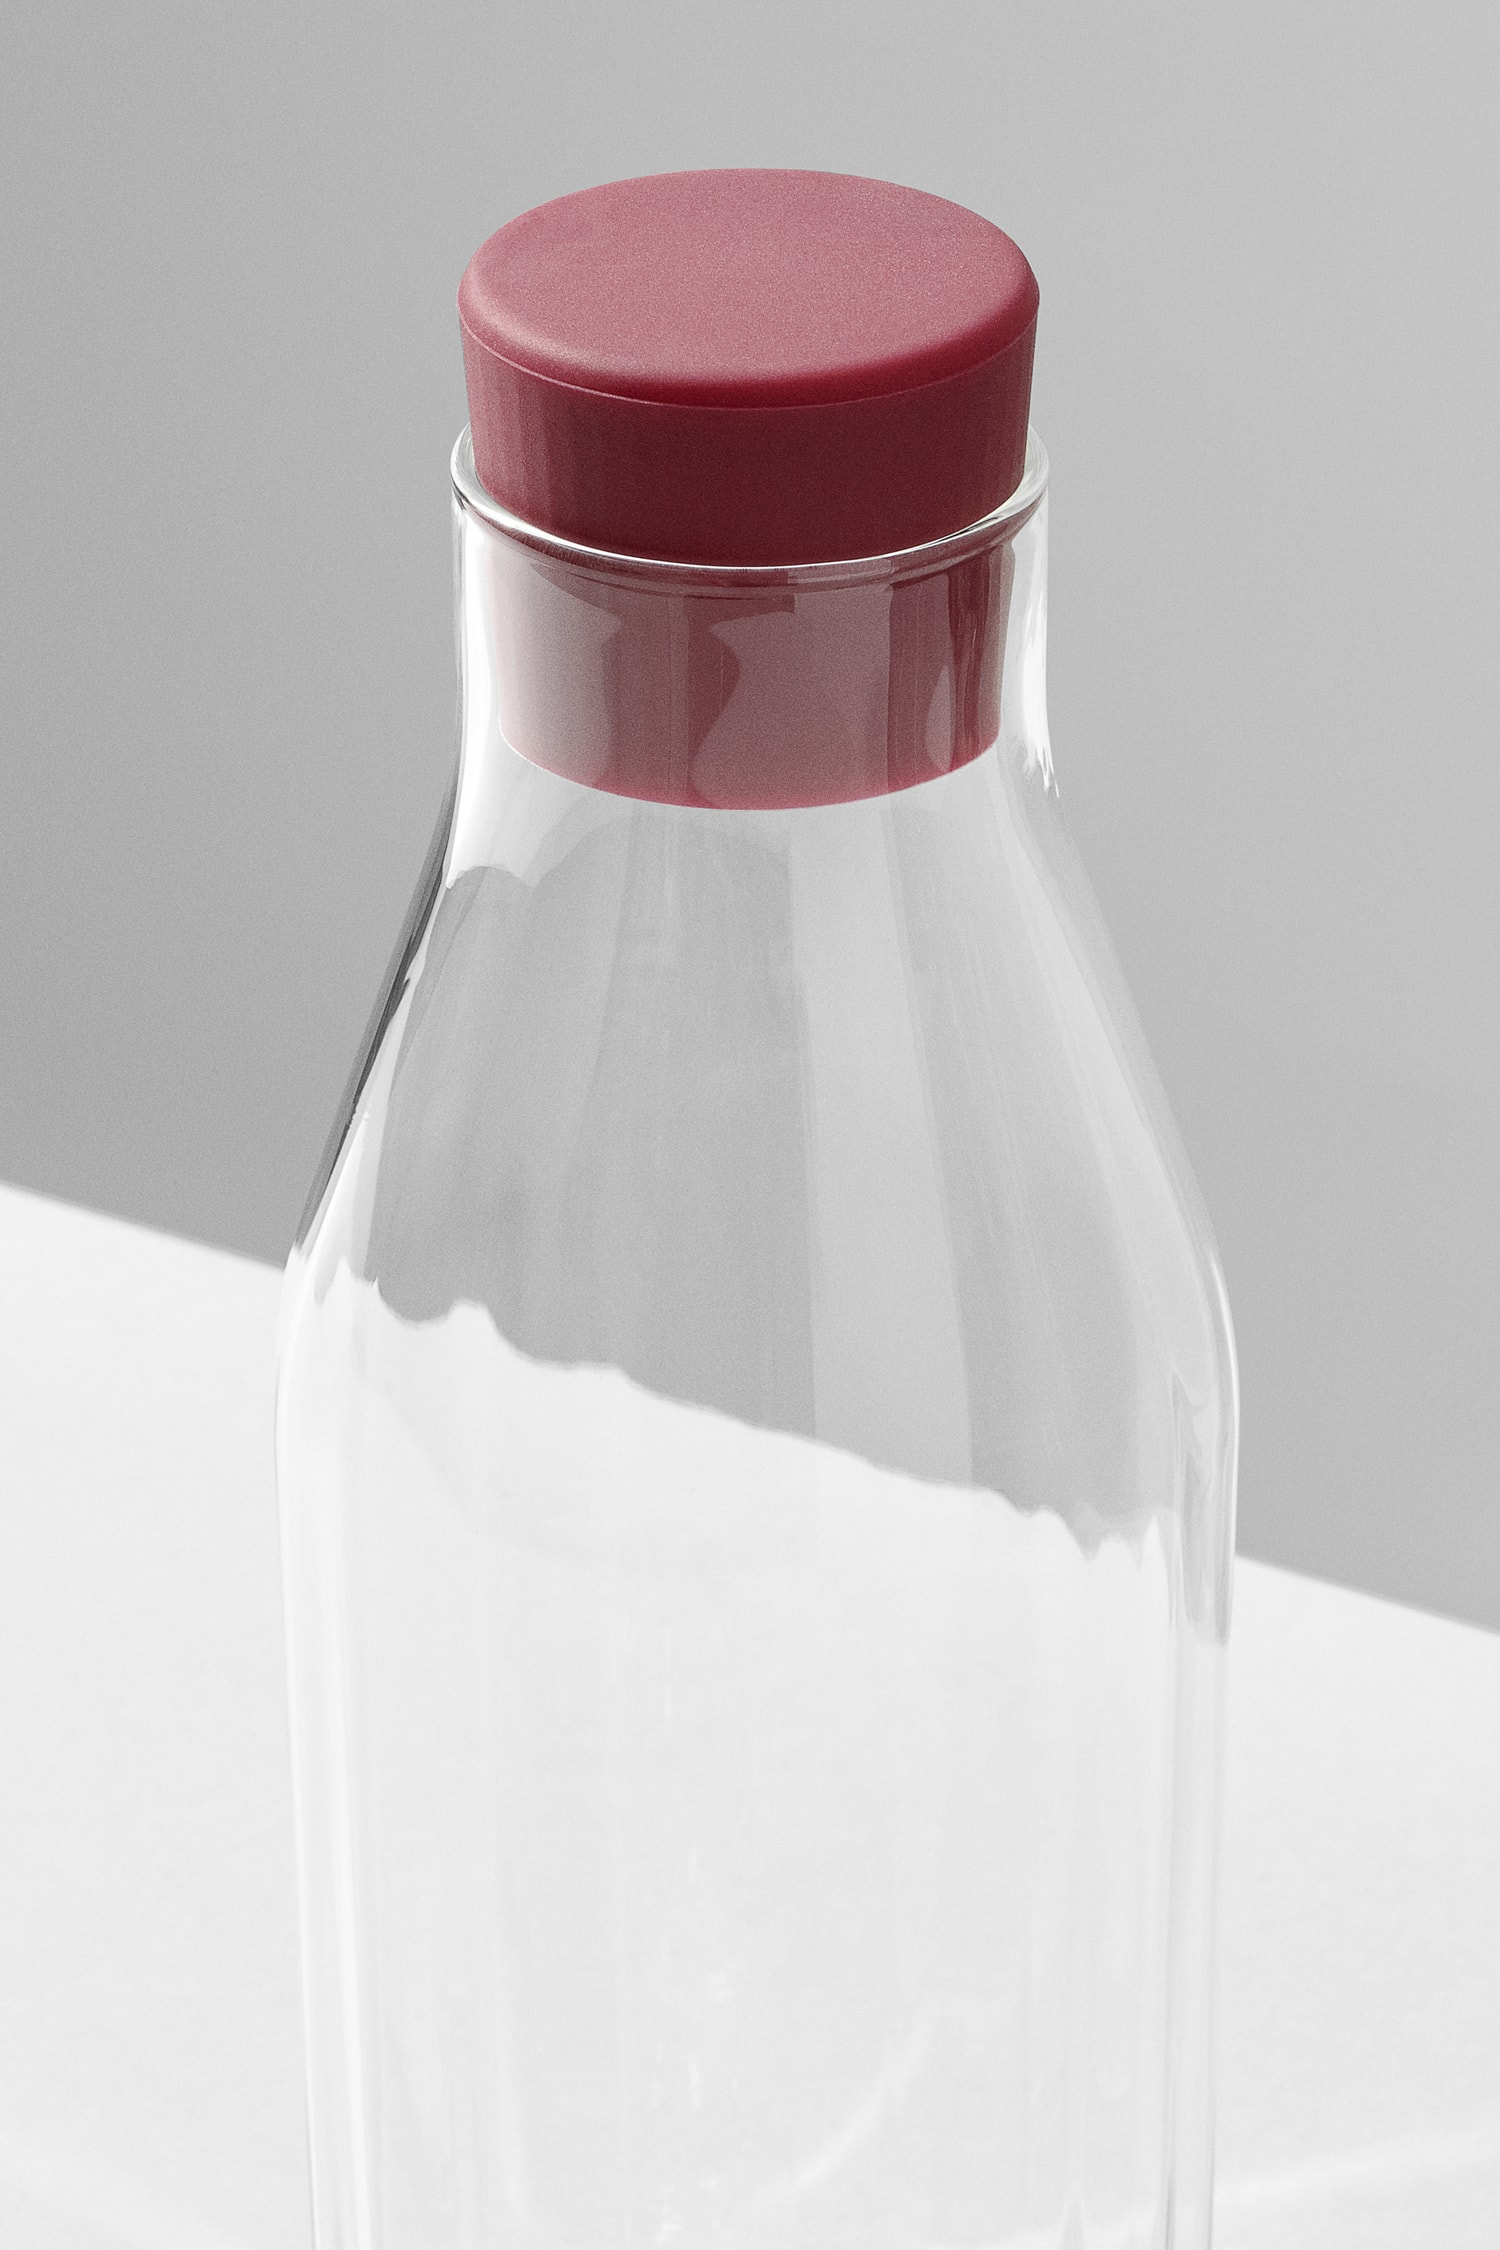 Perspective view of the top of the Rivington Glassware carafe showing the facets, red stopper.